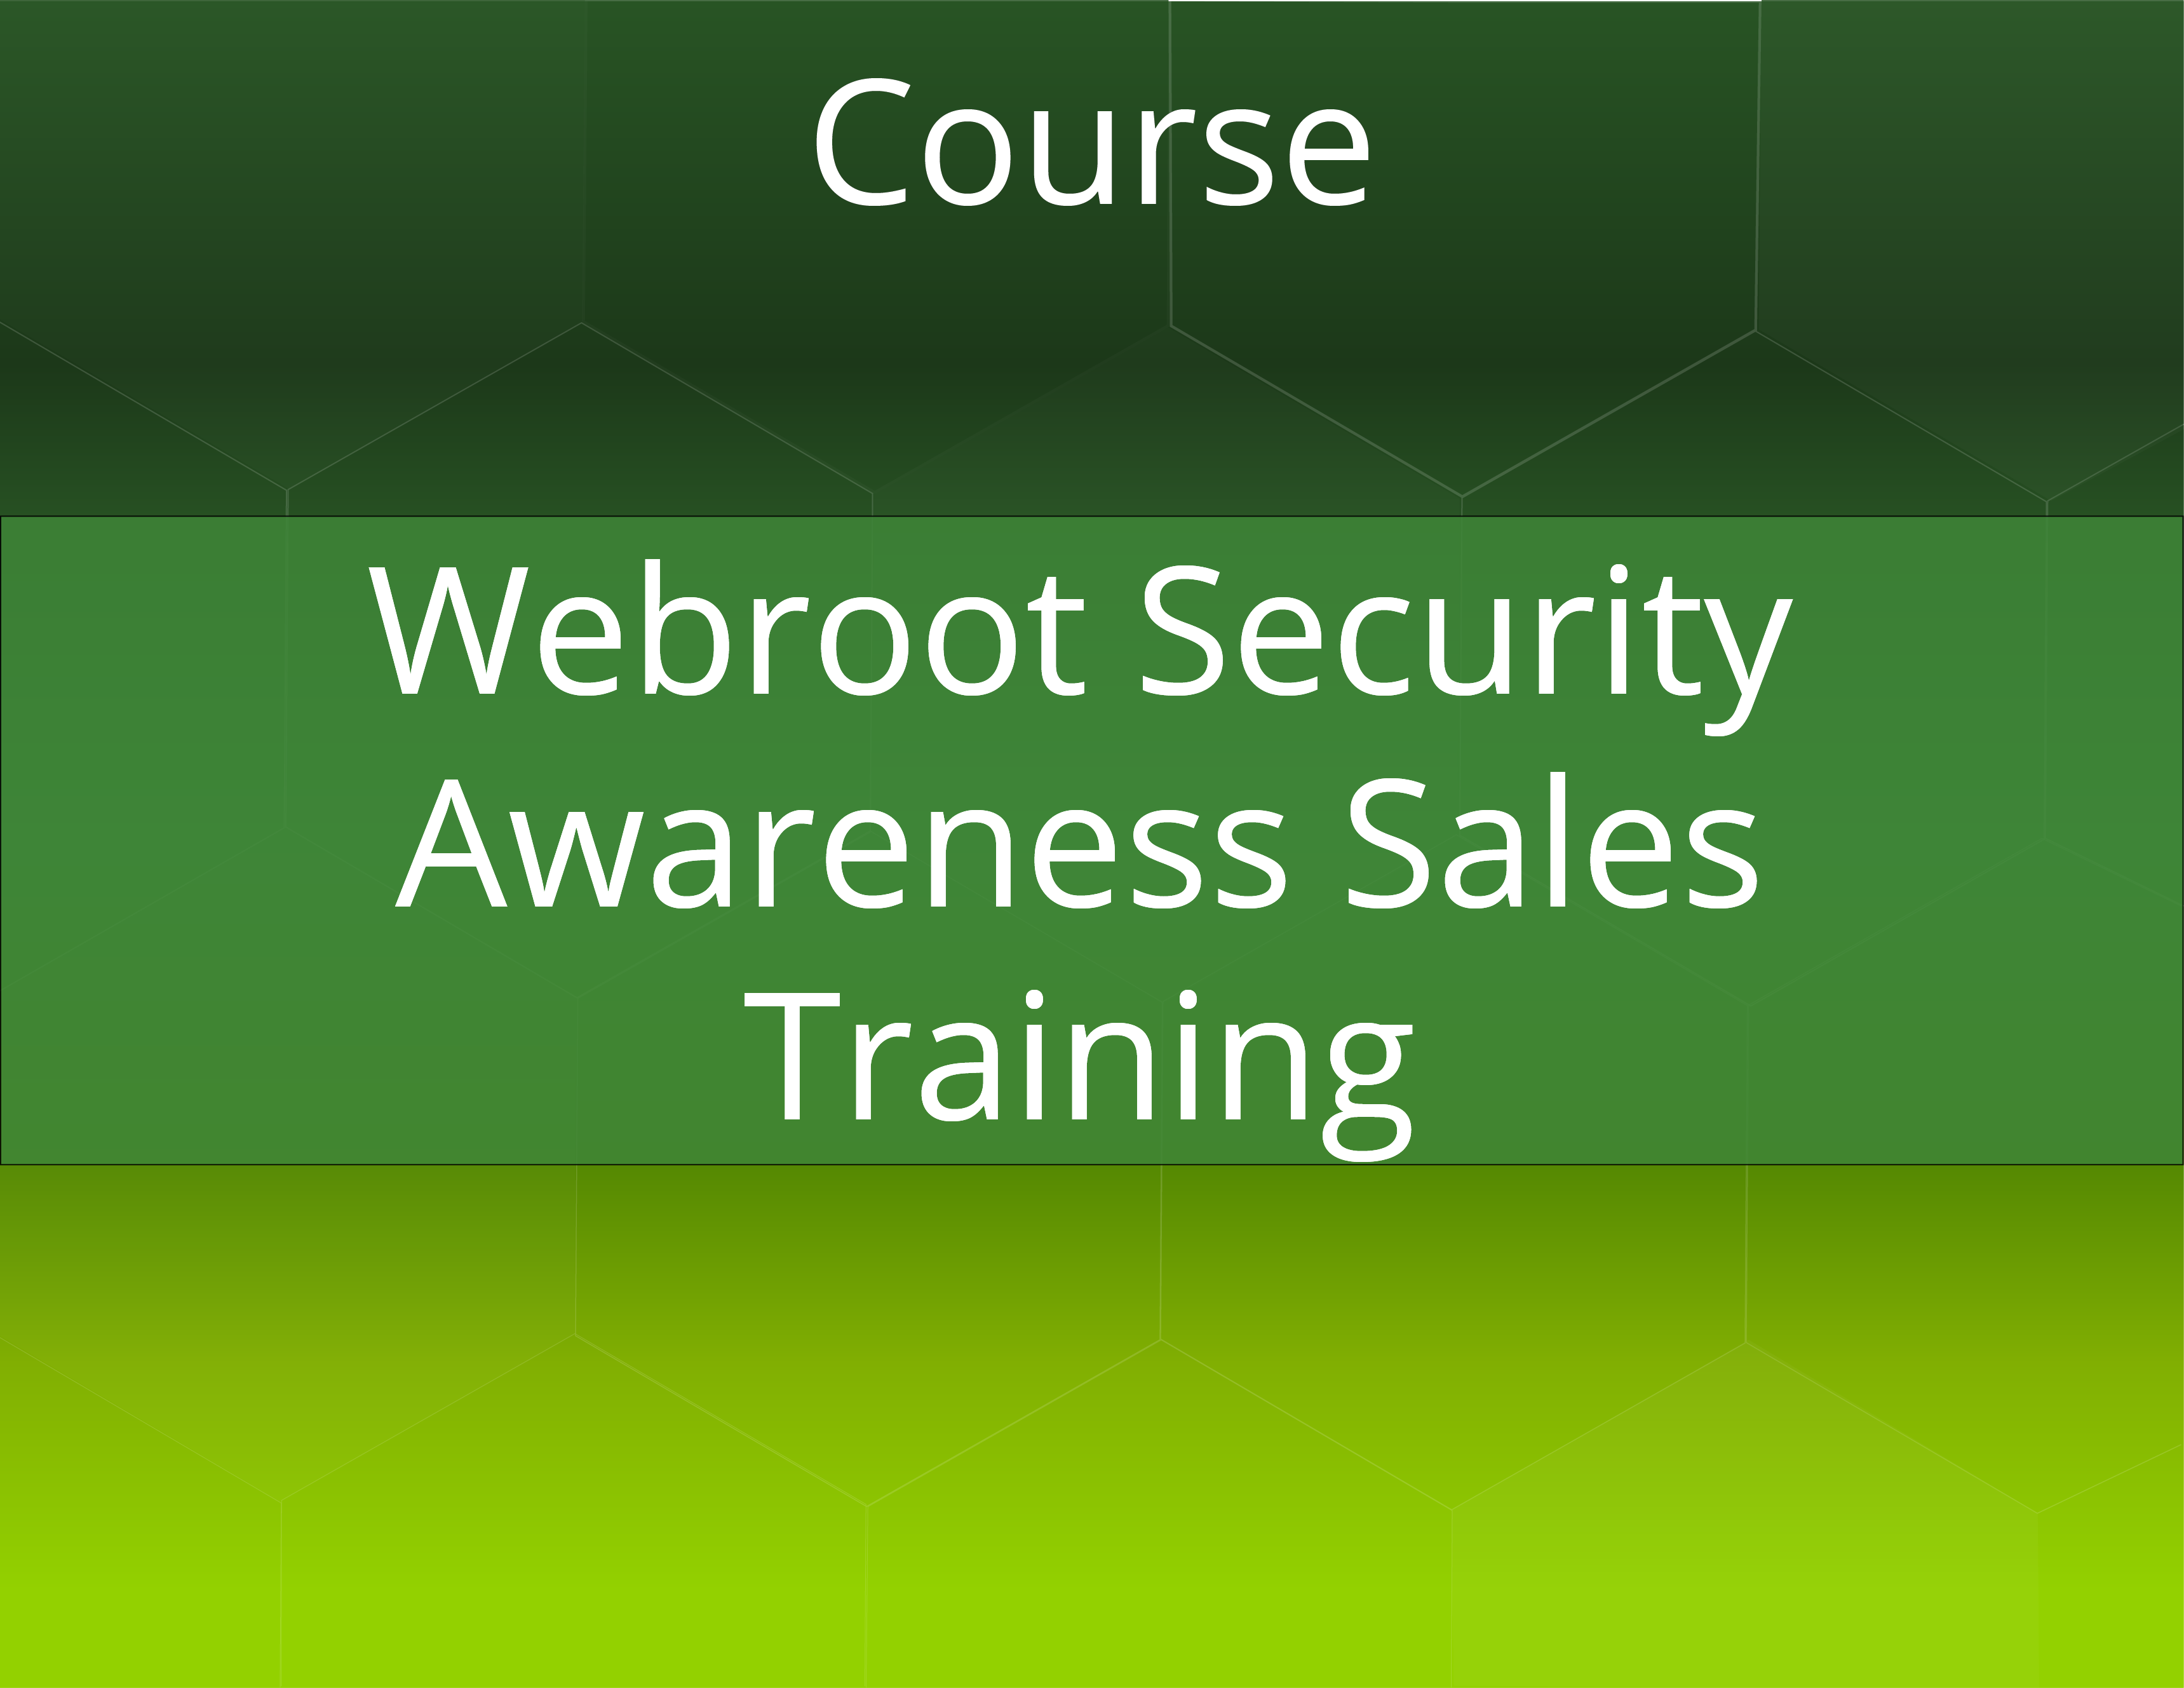 Webroot® Security Awareness Sales Training